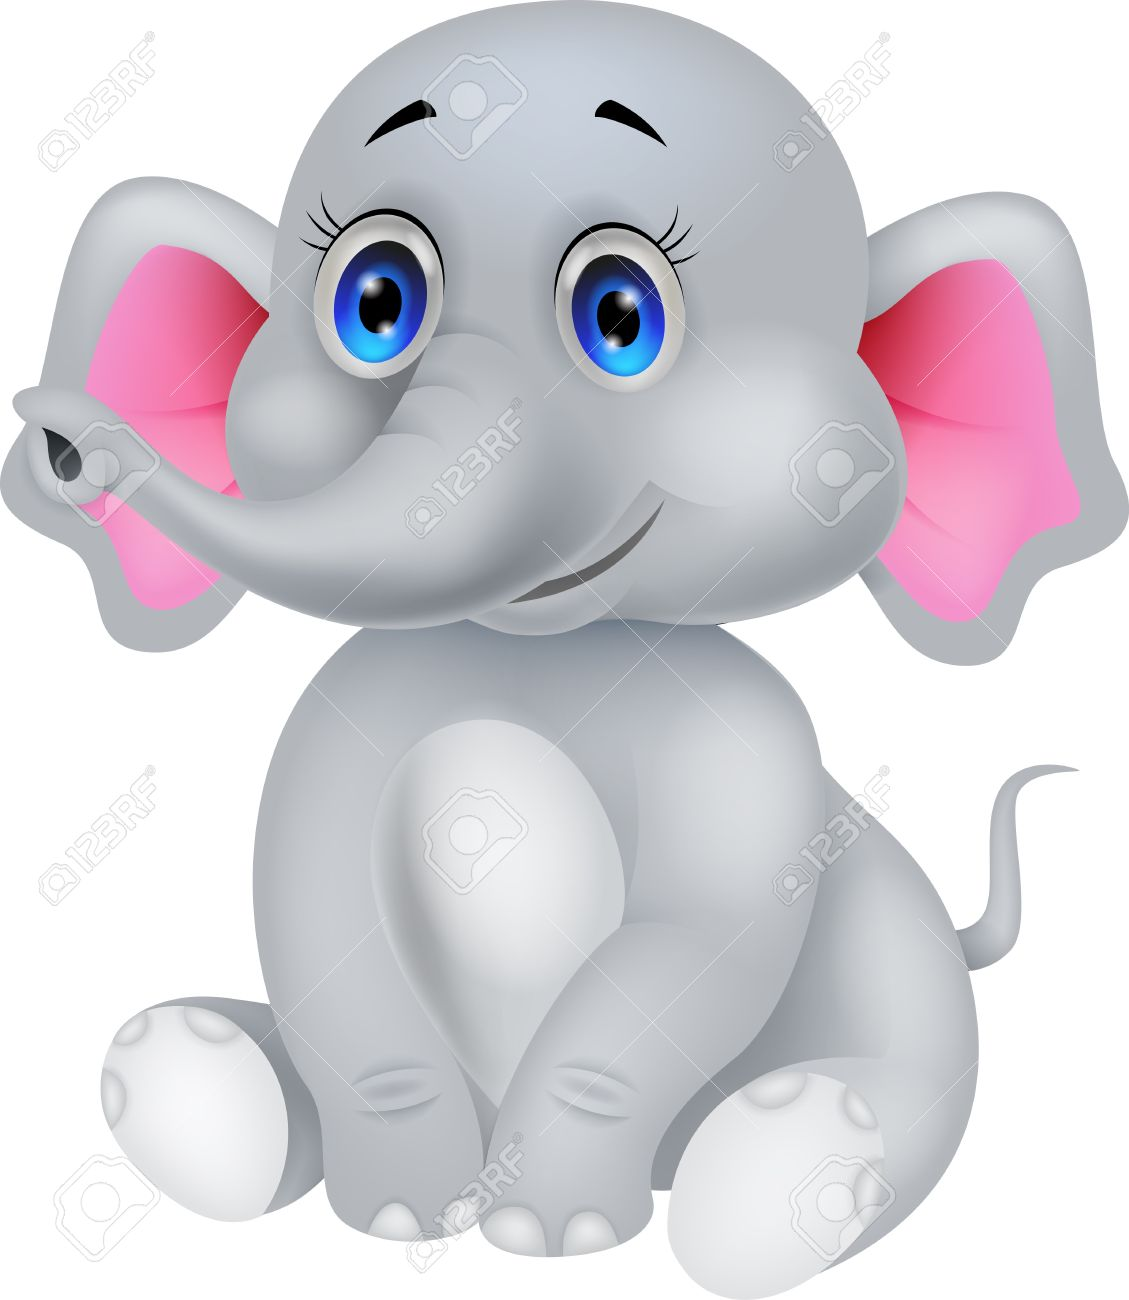 elephant nose images u0026 stock pictures royalty free elephant nose